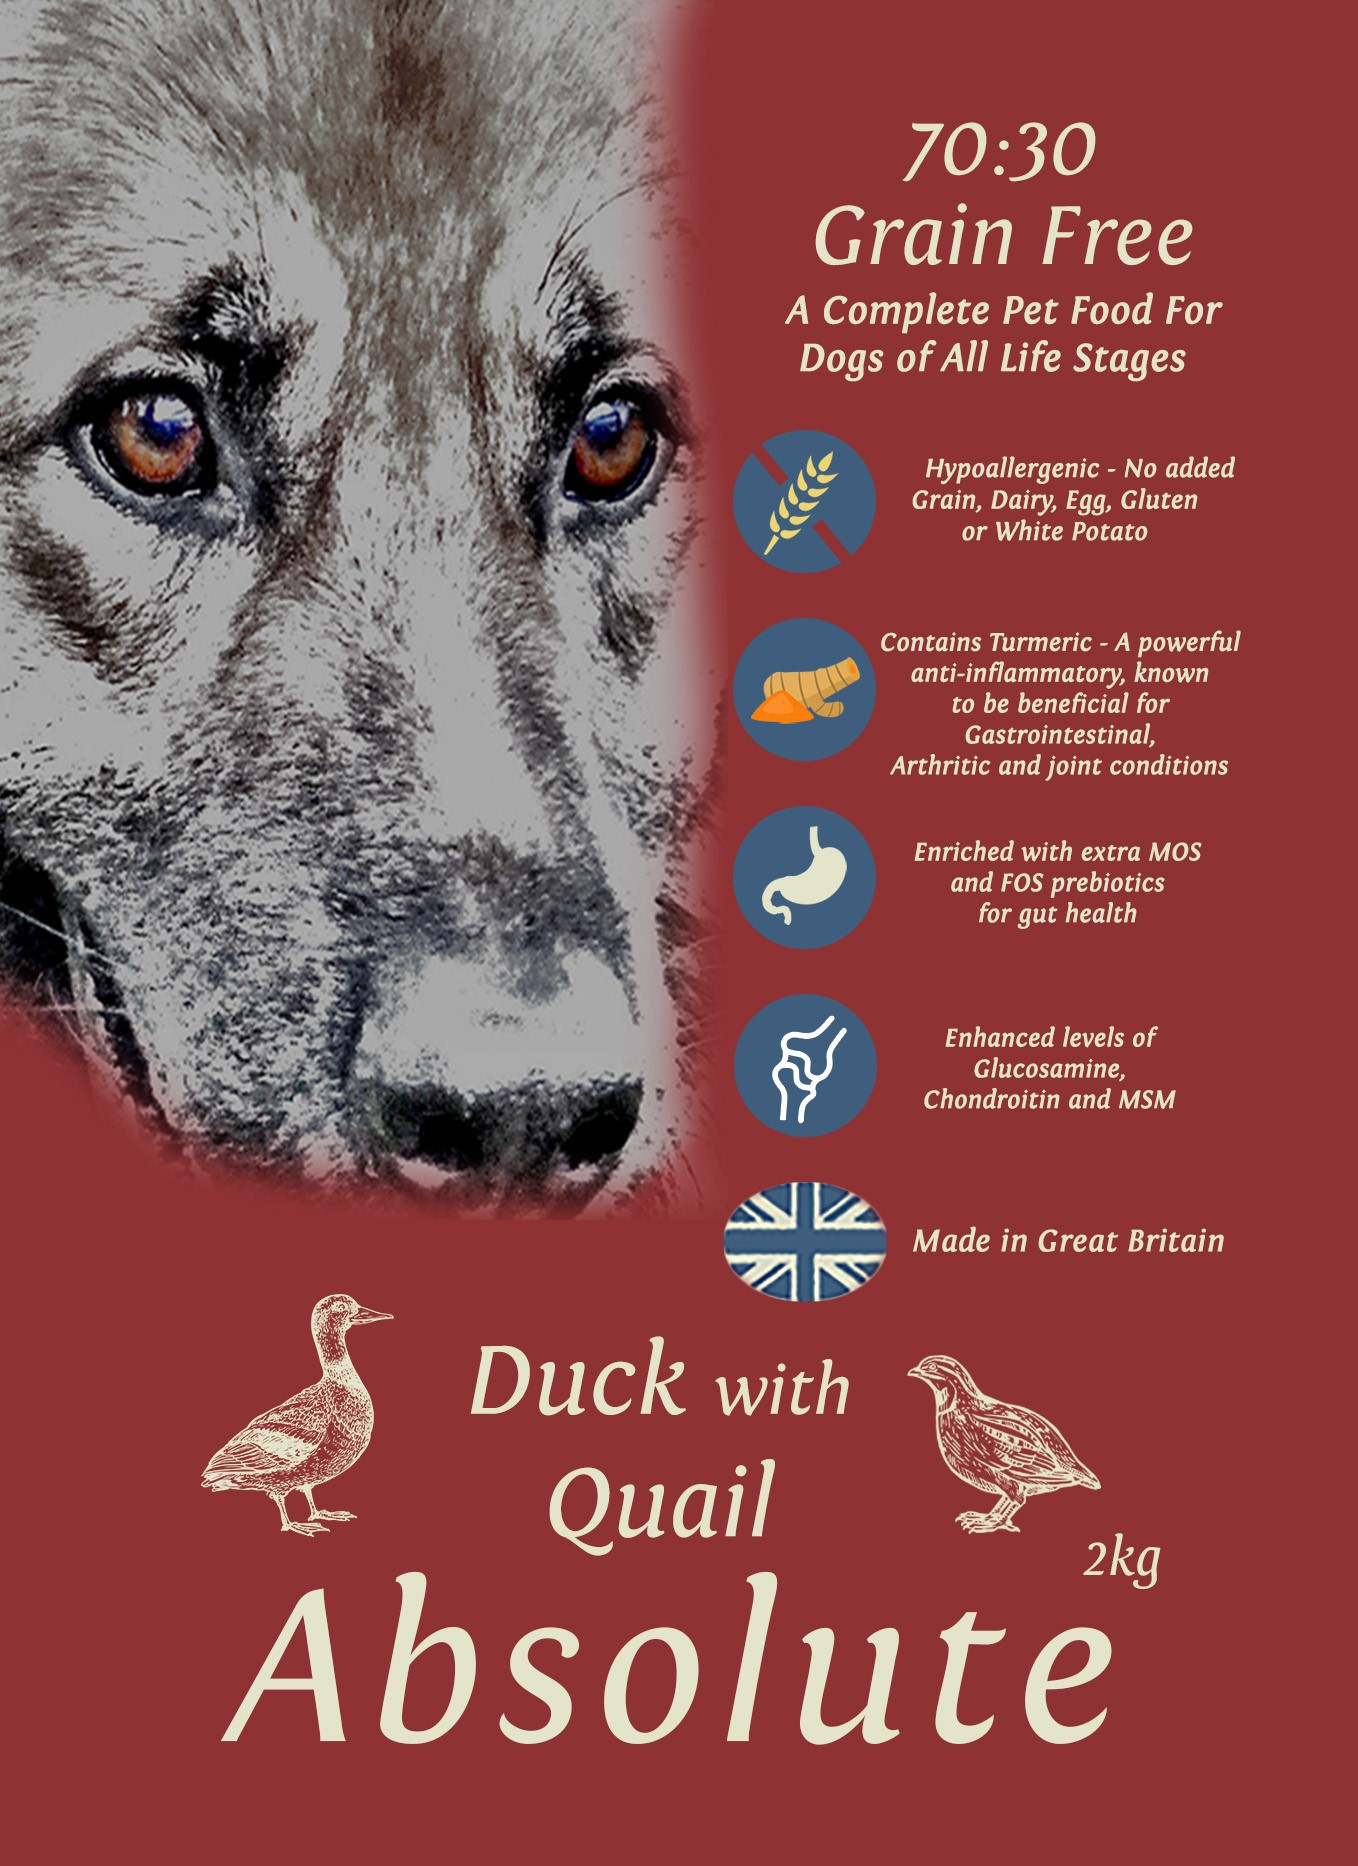 Grace 70/30 Absolute Duck with Quail 2kg Dog Food